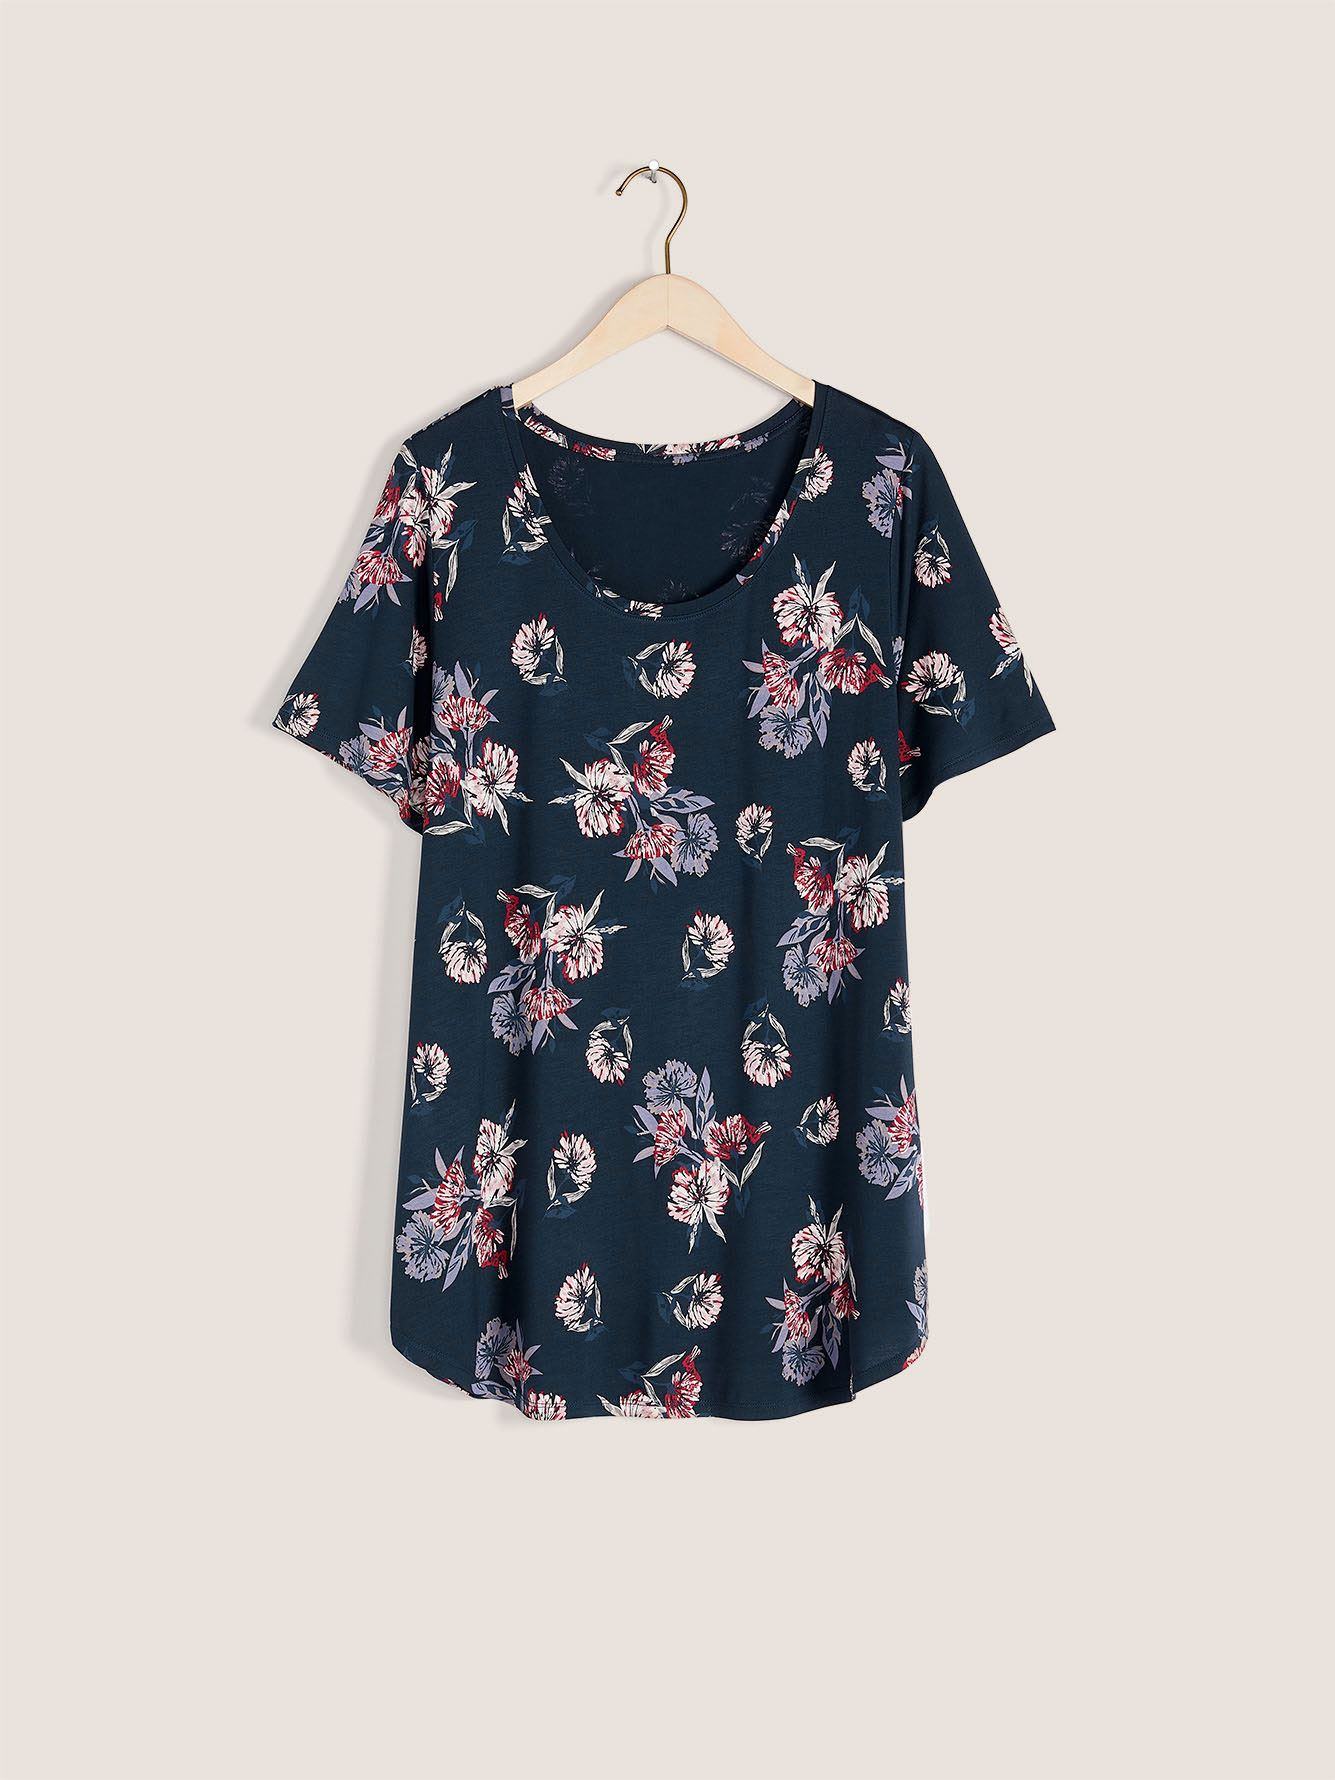 Printed Modern Scoop-Neck T-shirt - In Every Story